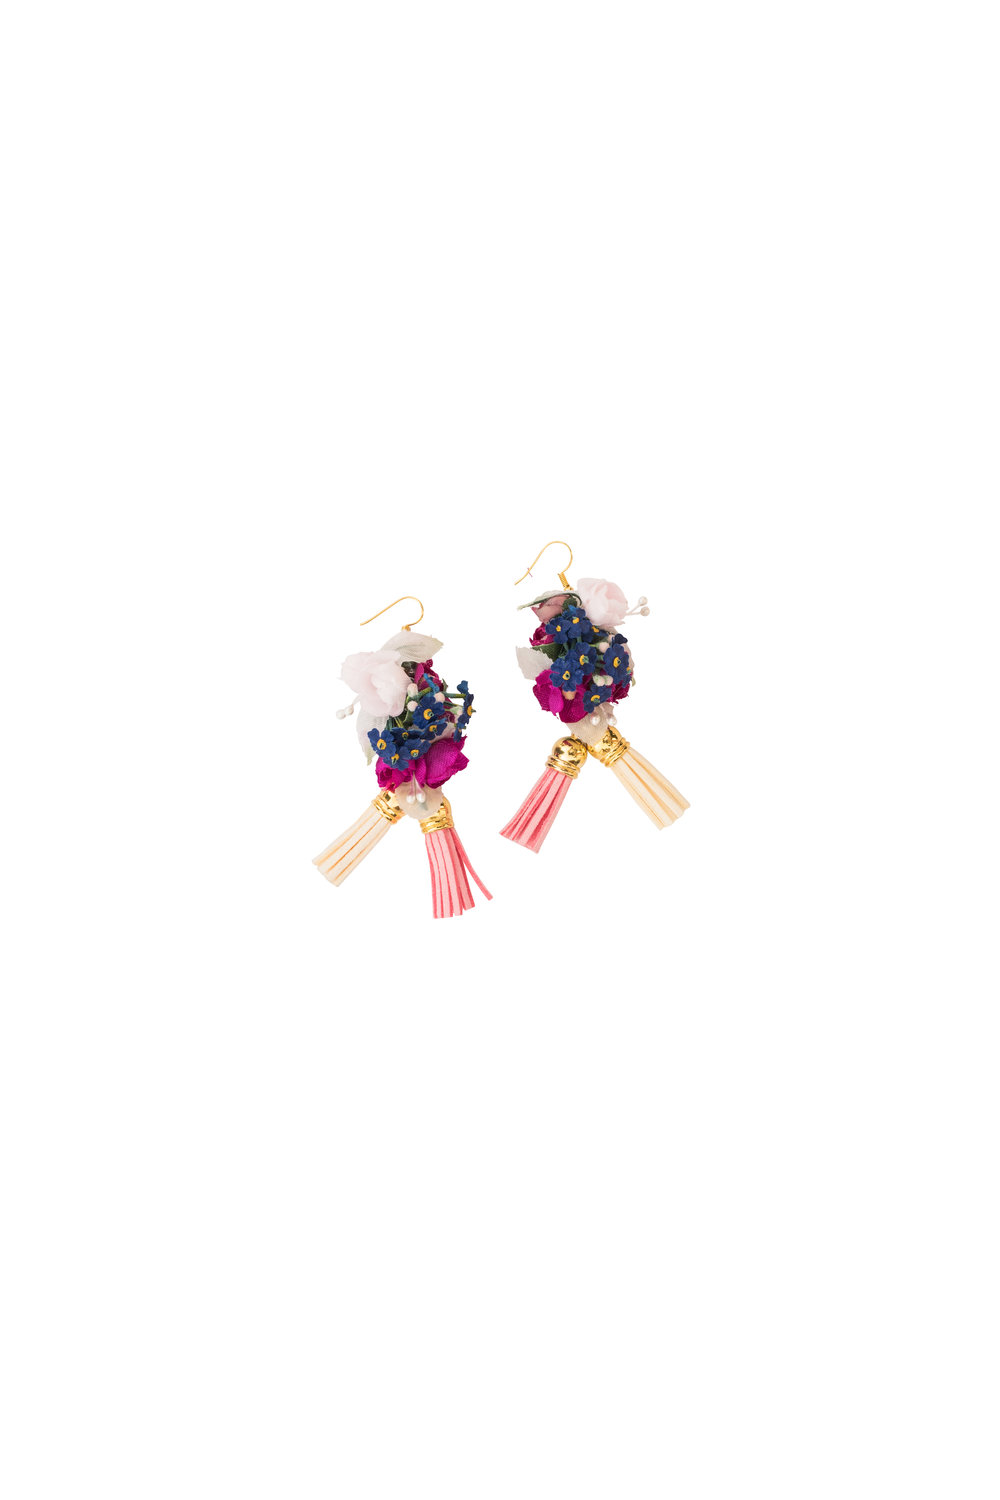 We-Are-Flowergirls-Spring-Summer-Collection-Earring-Tassel-€29[L1140654].jpg